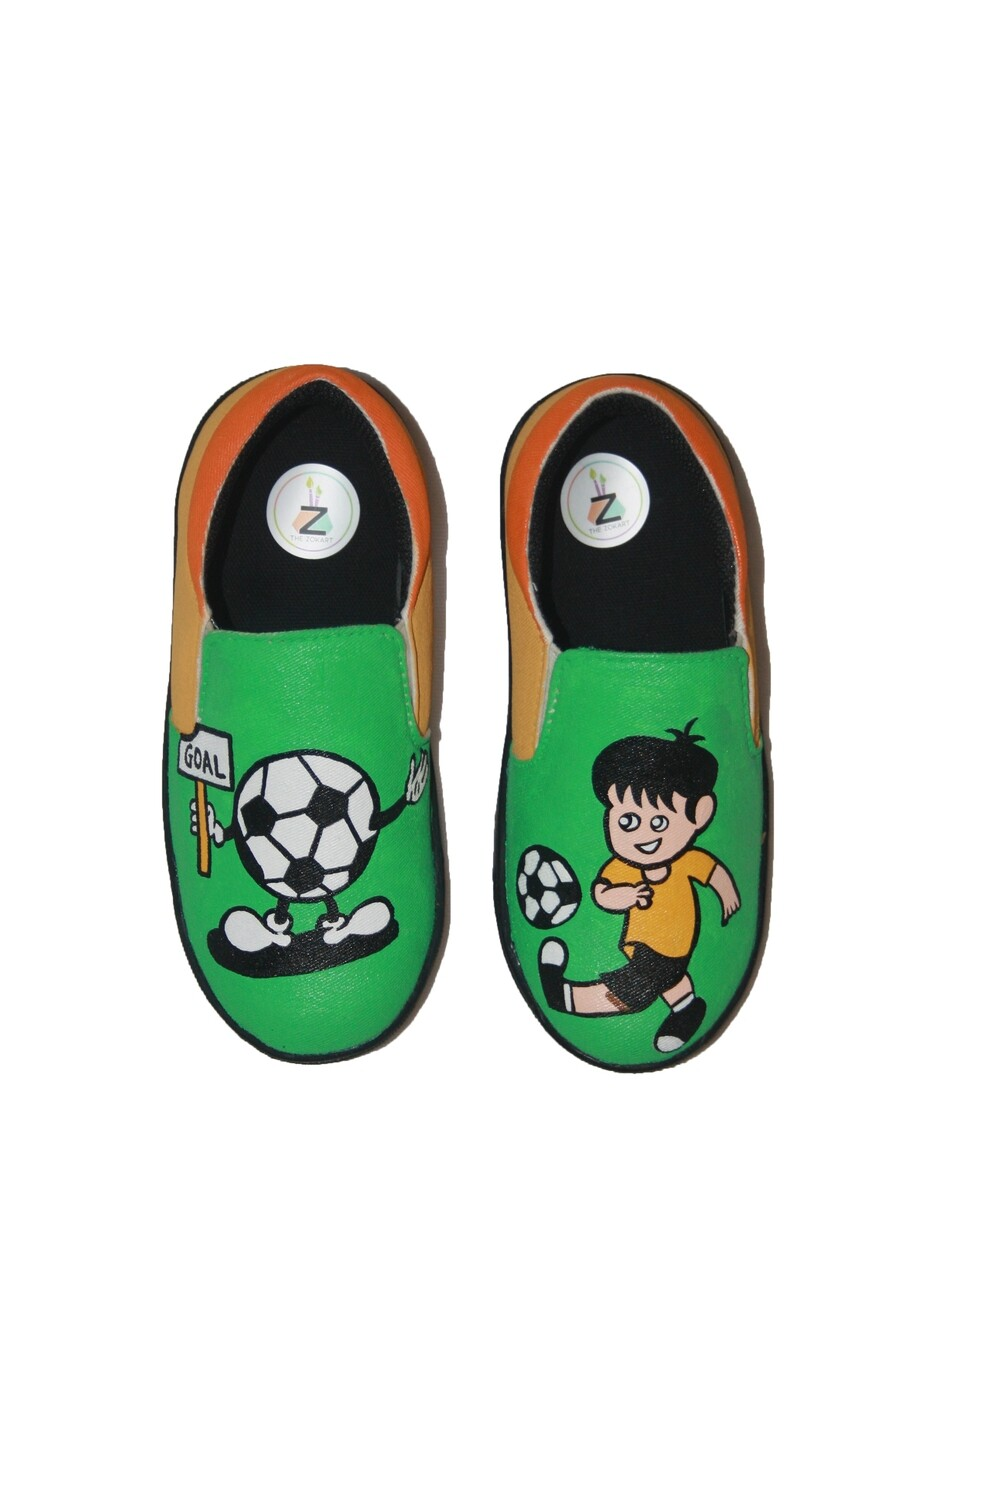 Hand Painted Green Football Shoes For Kids